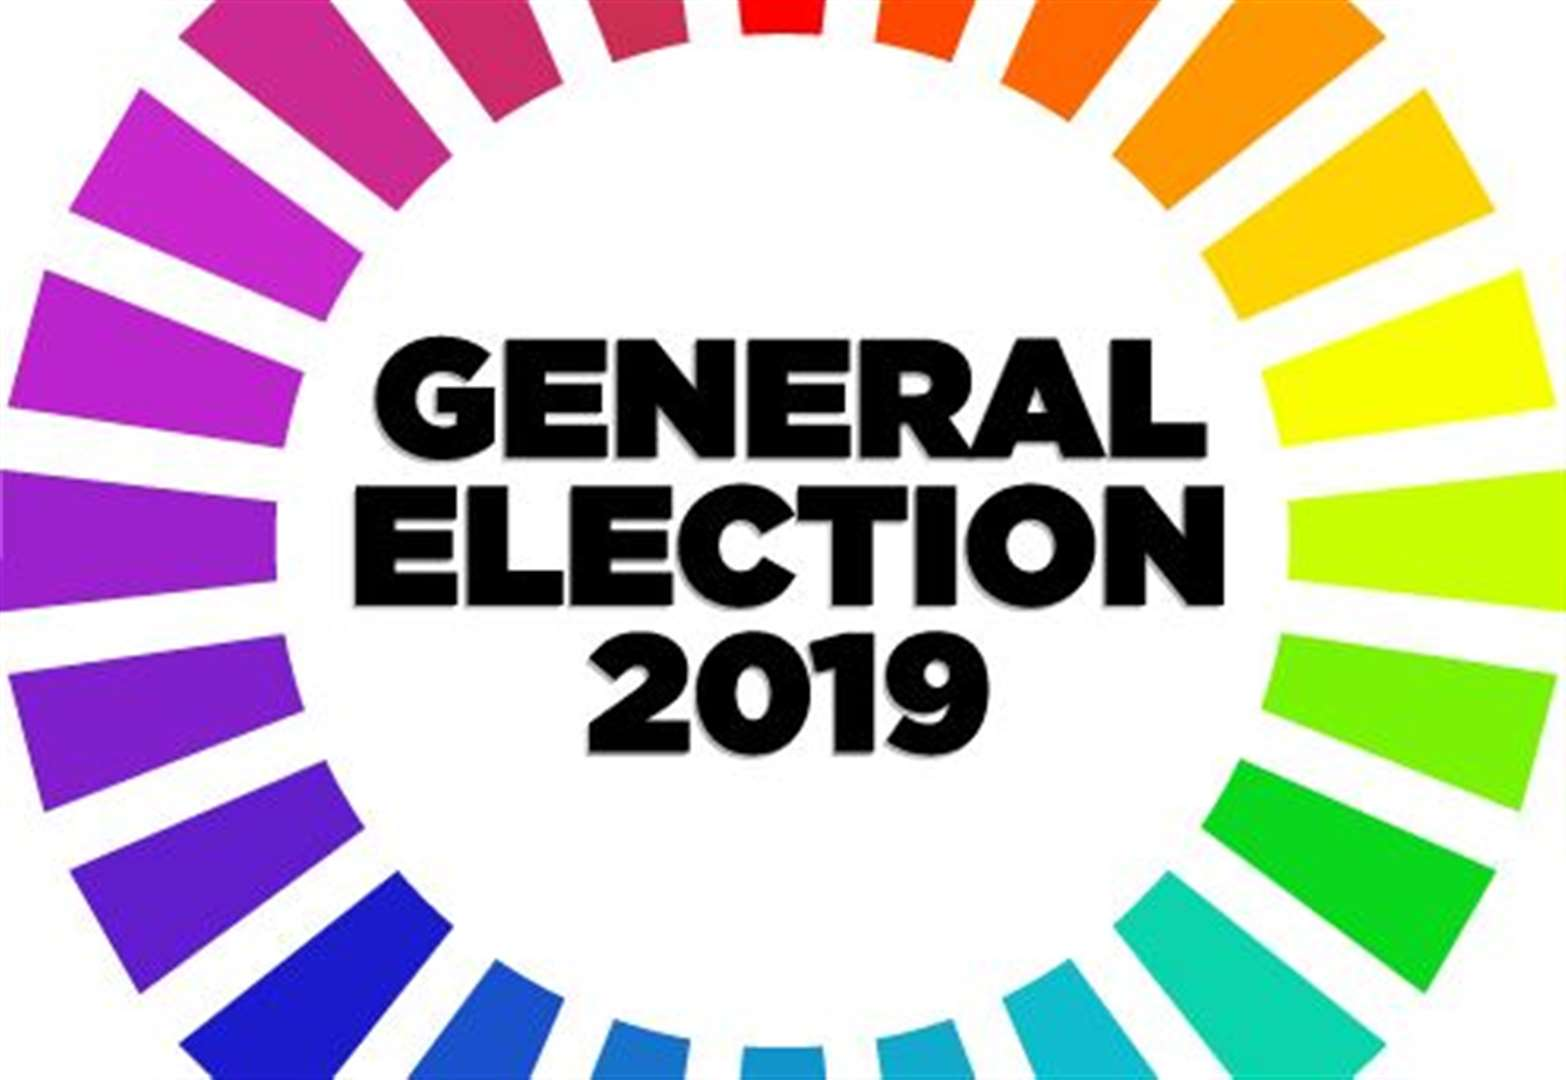 General Election 2019 candidates for Maidstone and the Weald